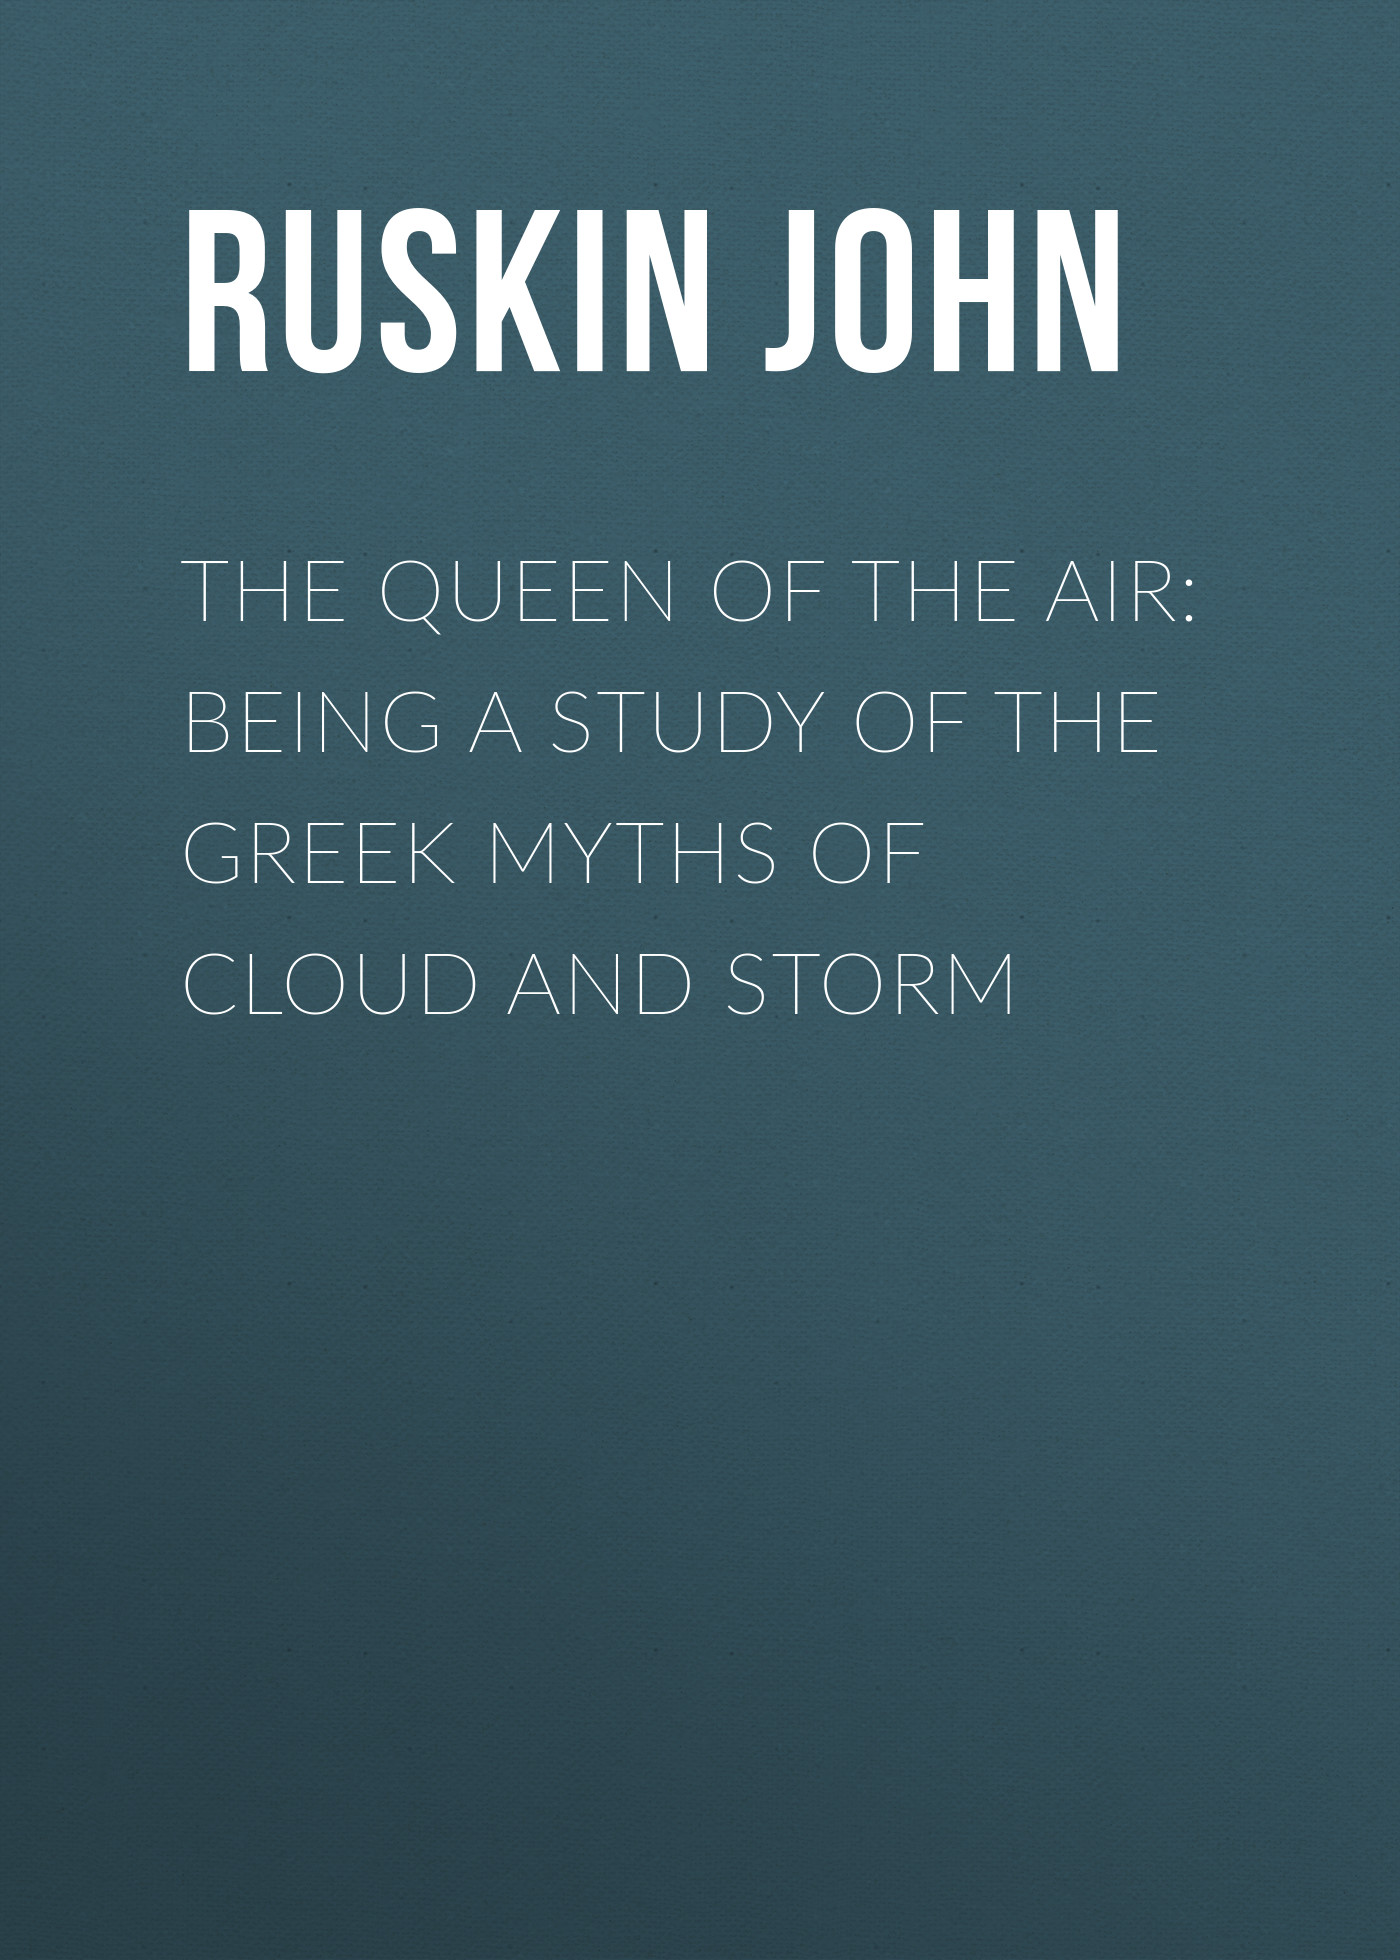 Ruskin John The Queen of the Air: Being a Study of the Greek Myths of Cloud and Storm